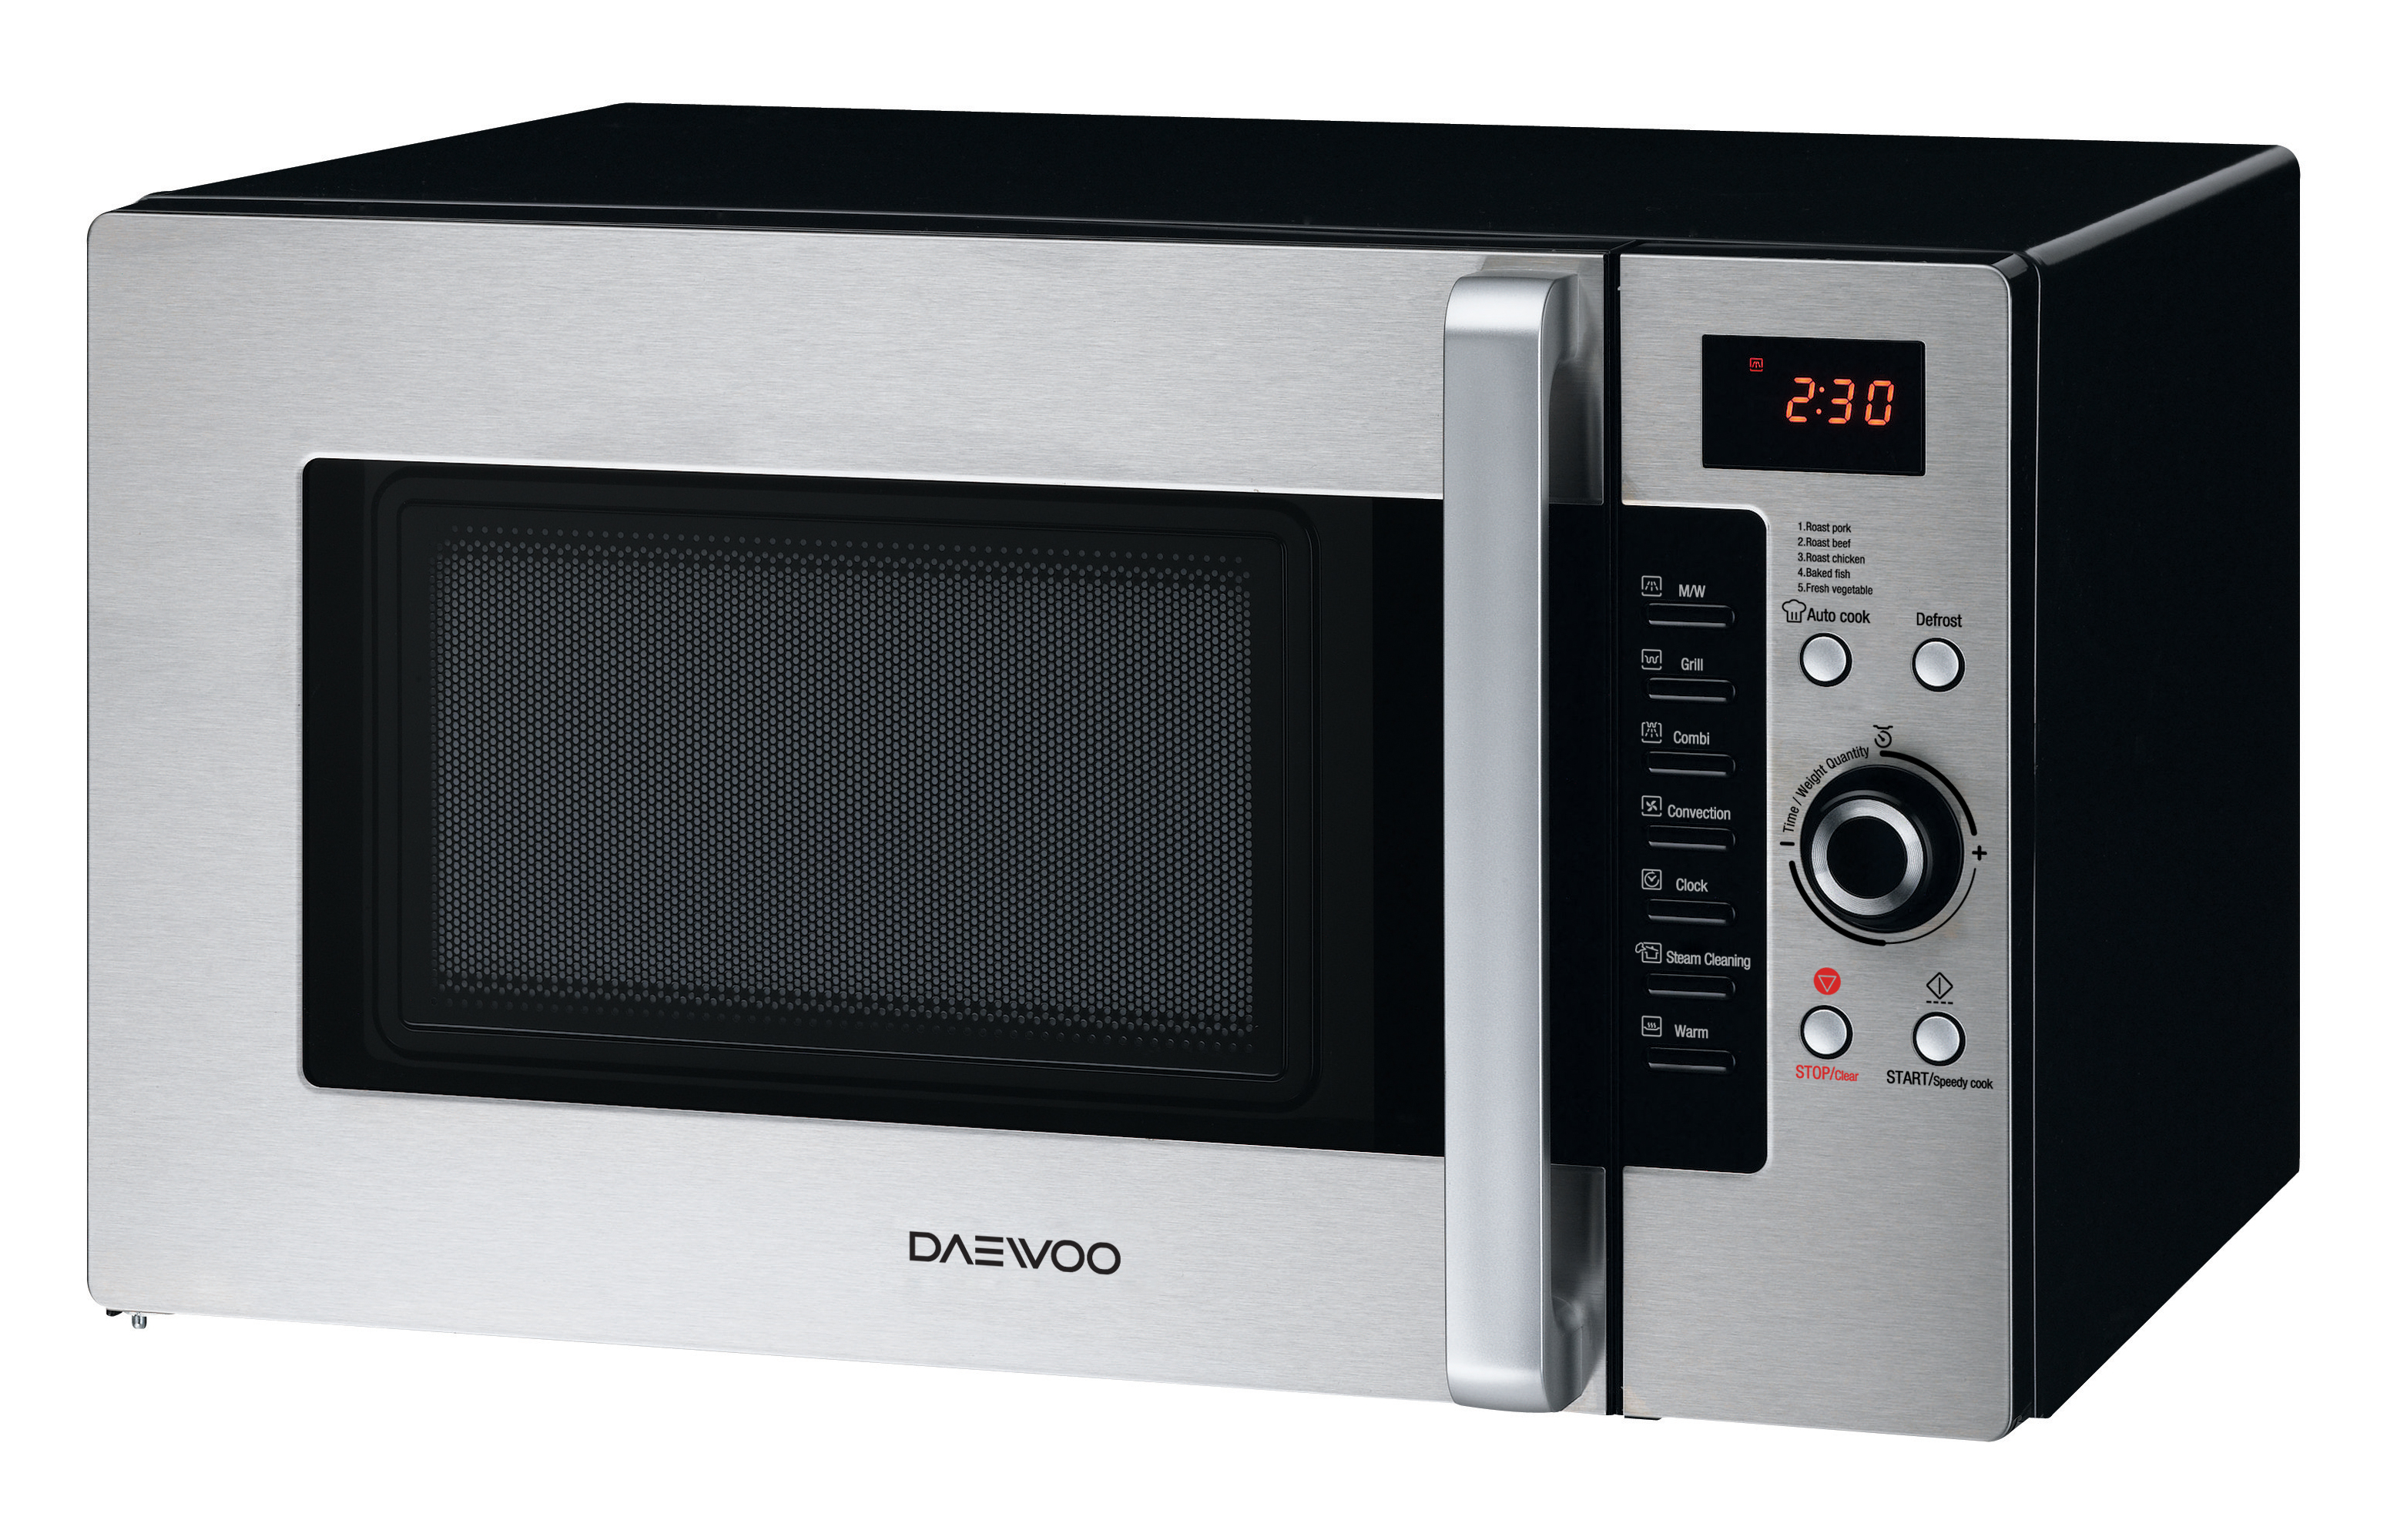 Daewoo Koc 9q4ds Convection Microwave Oven 1 0 Cu Ft 900w Stainless Steel